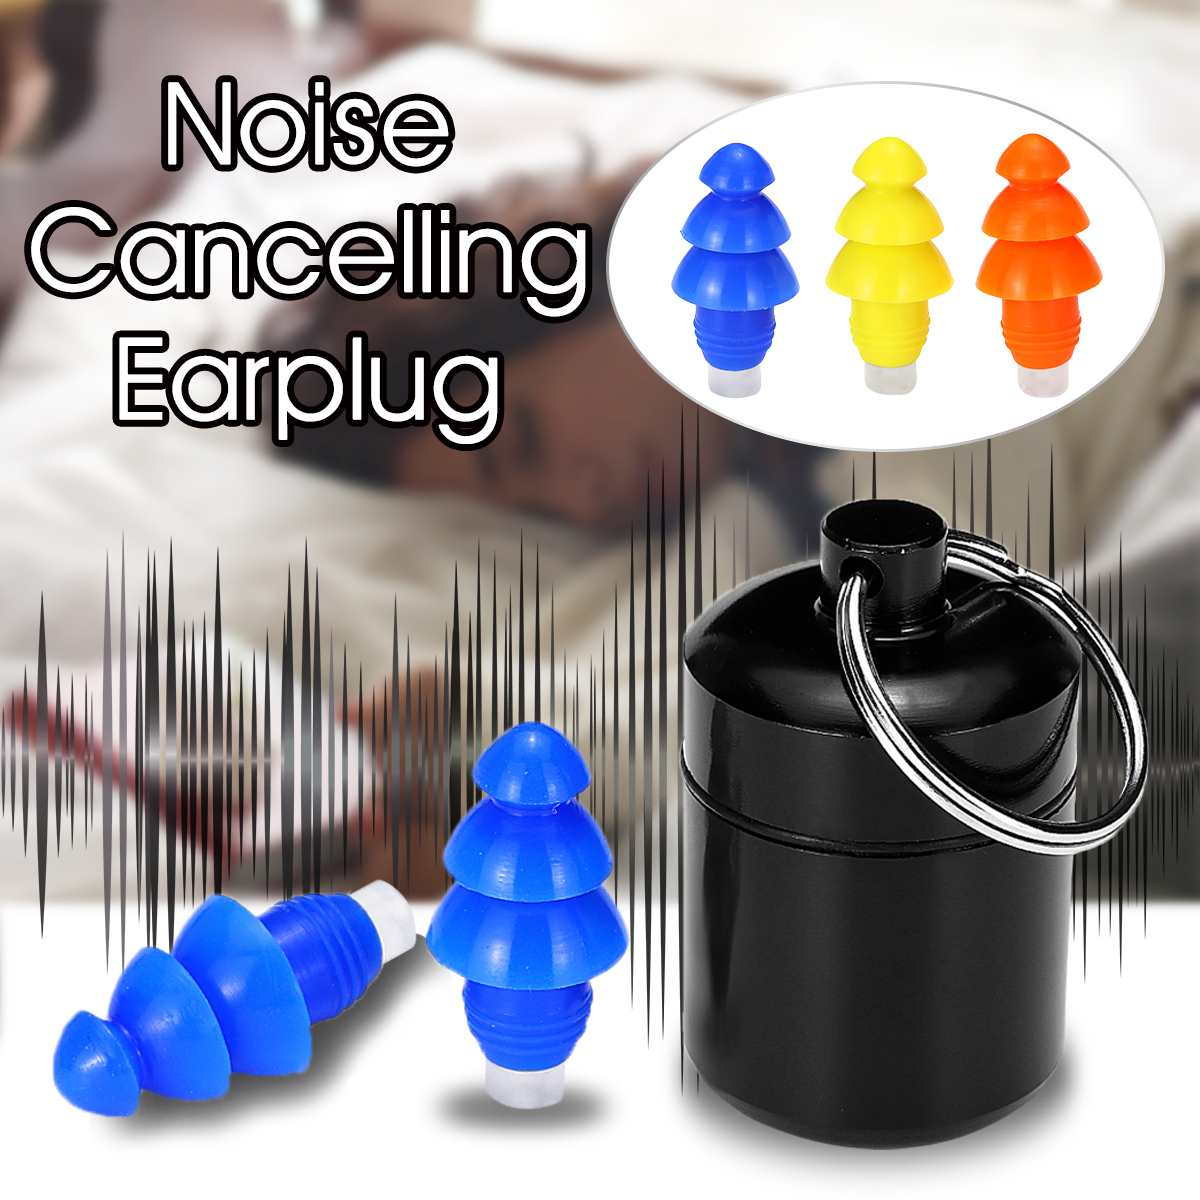 1 Pair 27db Soft Silicone Noise Cancelling Earplugs Swimming Diving Anti-Noise Ear Plug For Sleeping Hearing Protection With Box